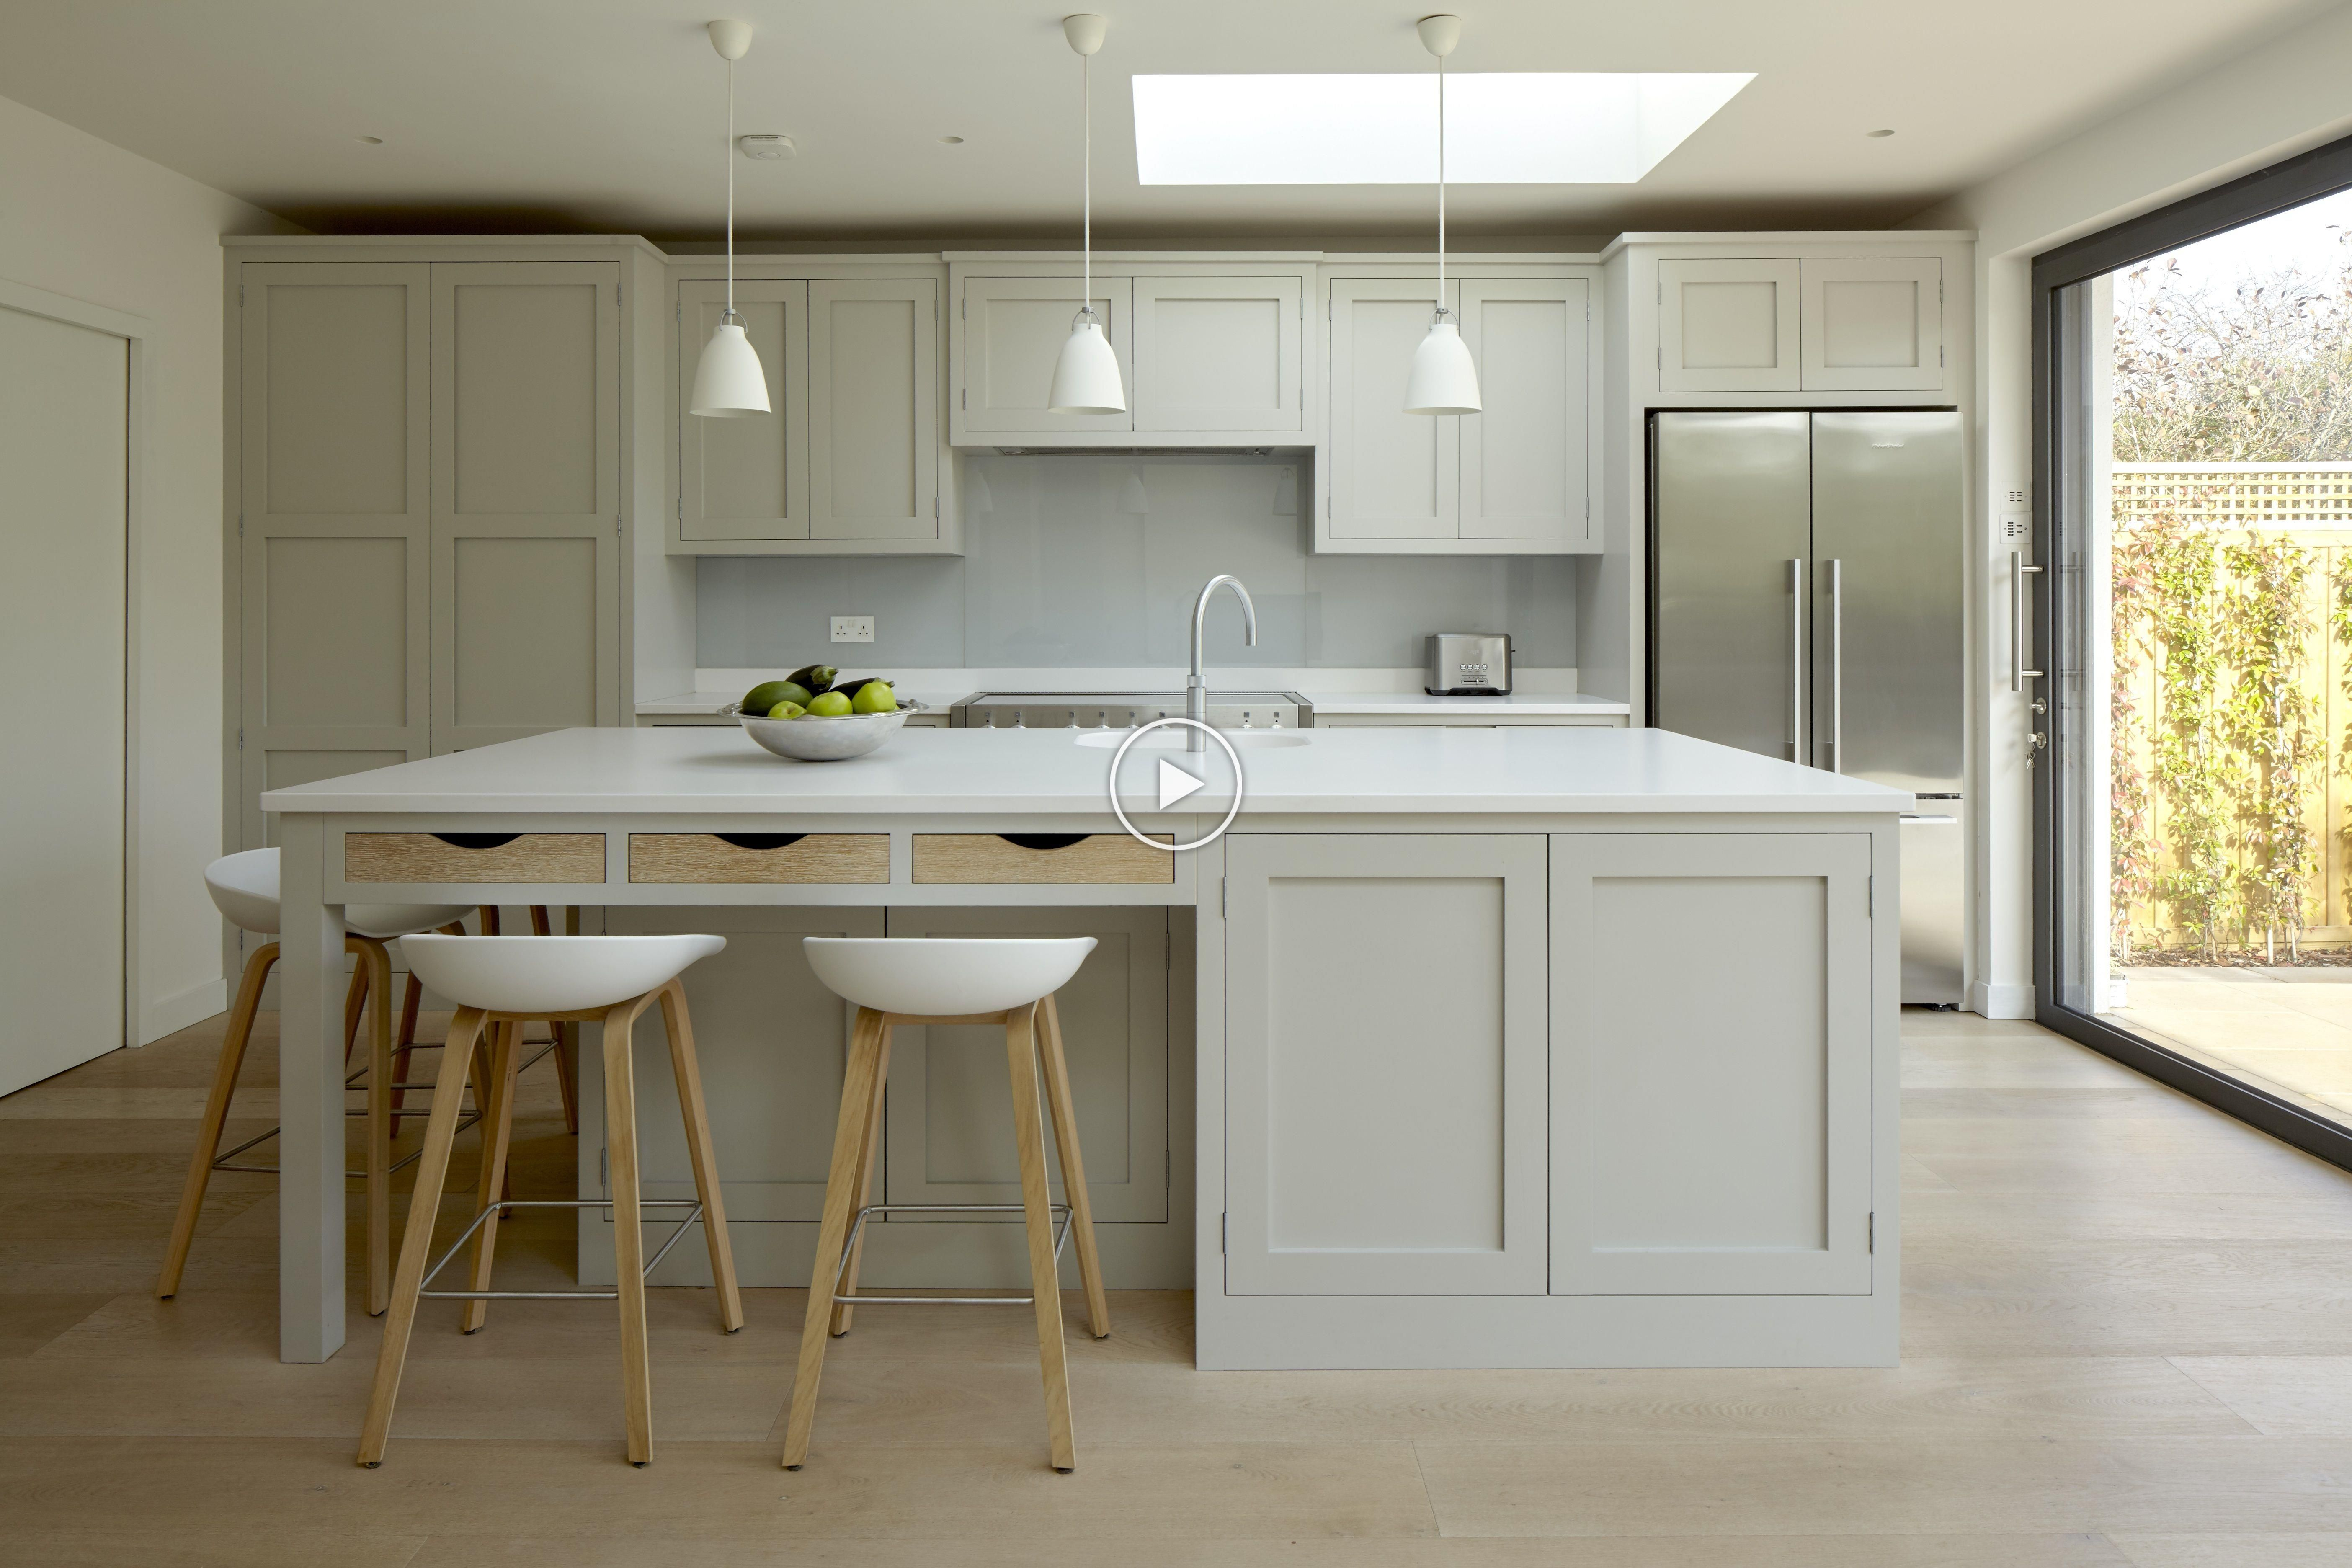 Claygate Handleless Shaker Kitchen Colour Little Greene French Grey 113 Worktops 30mm Classic Kitchen Design Kitchen Inspiration Design Timeless Kitchen